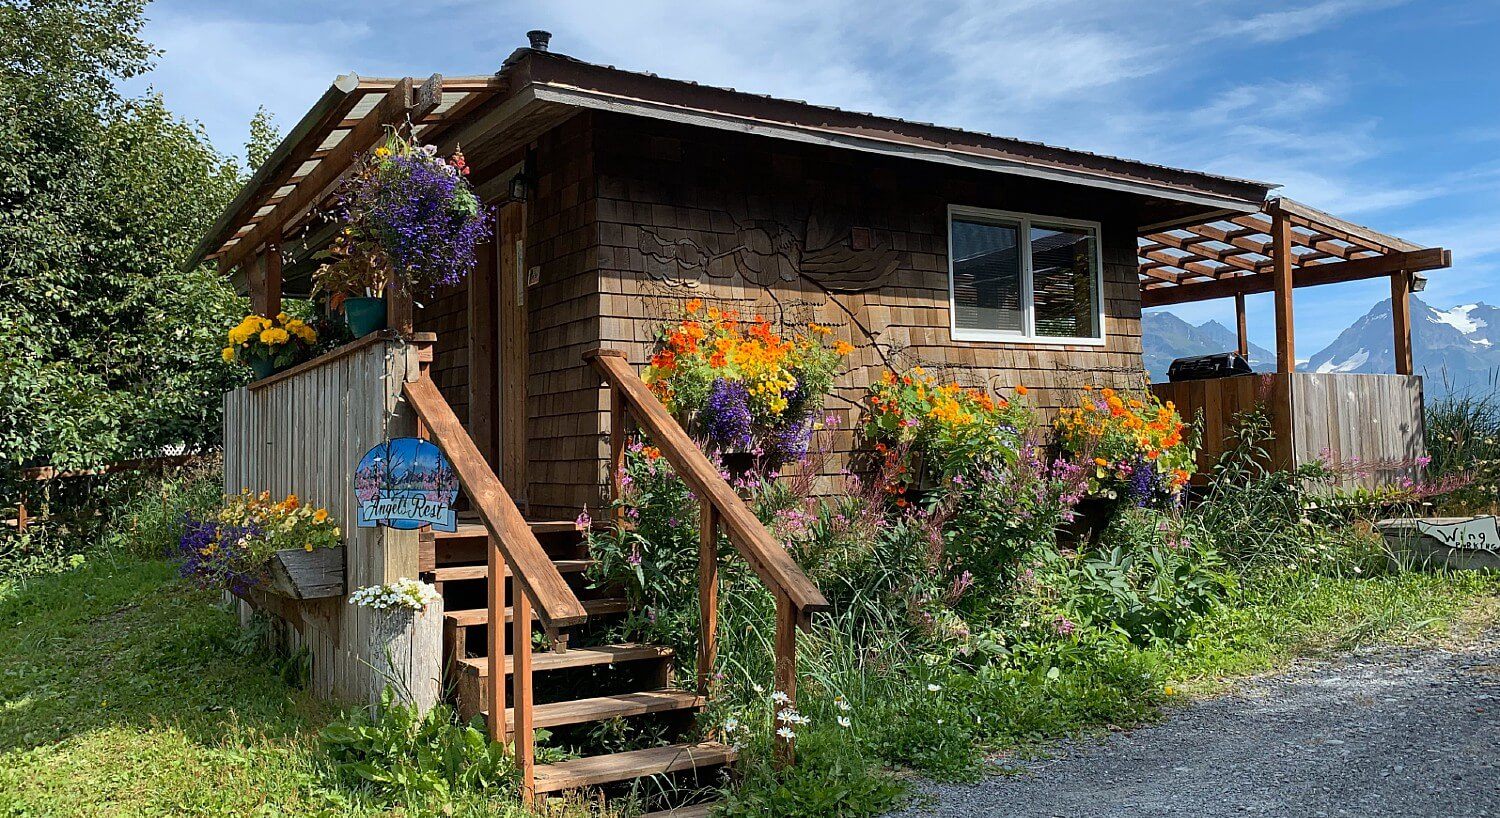 Brown cabin with flat roof, small porch and staircase and colorful flowers with mountains in background